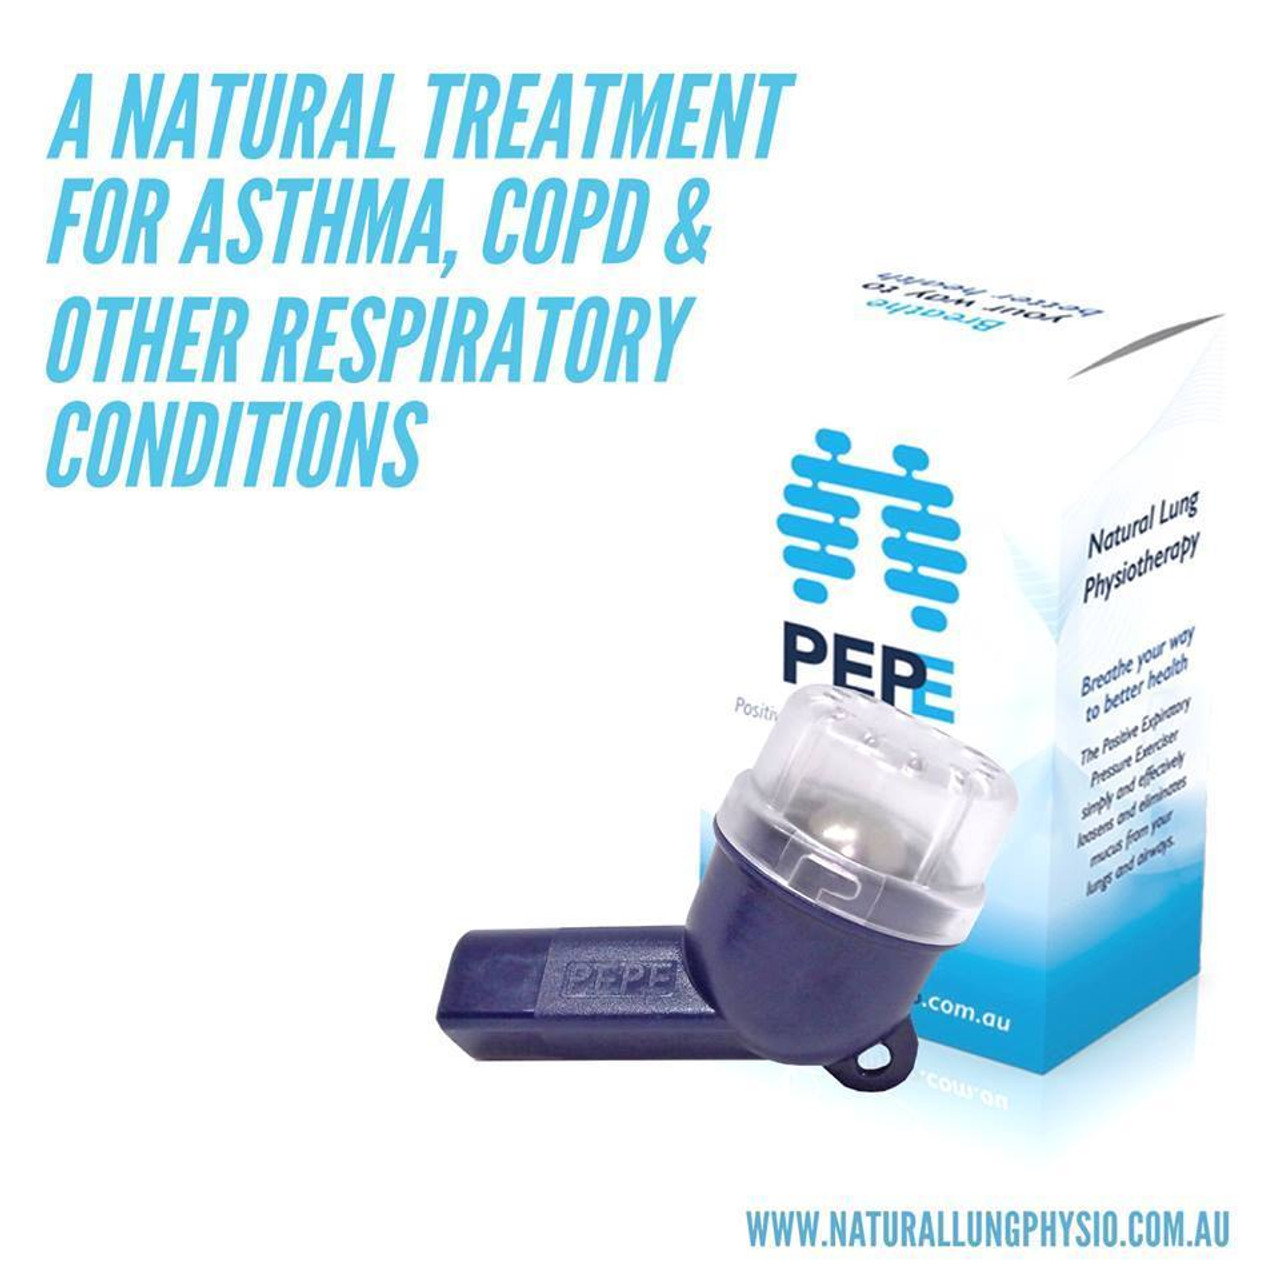 PEPE Airway Clearance Respiratory Device